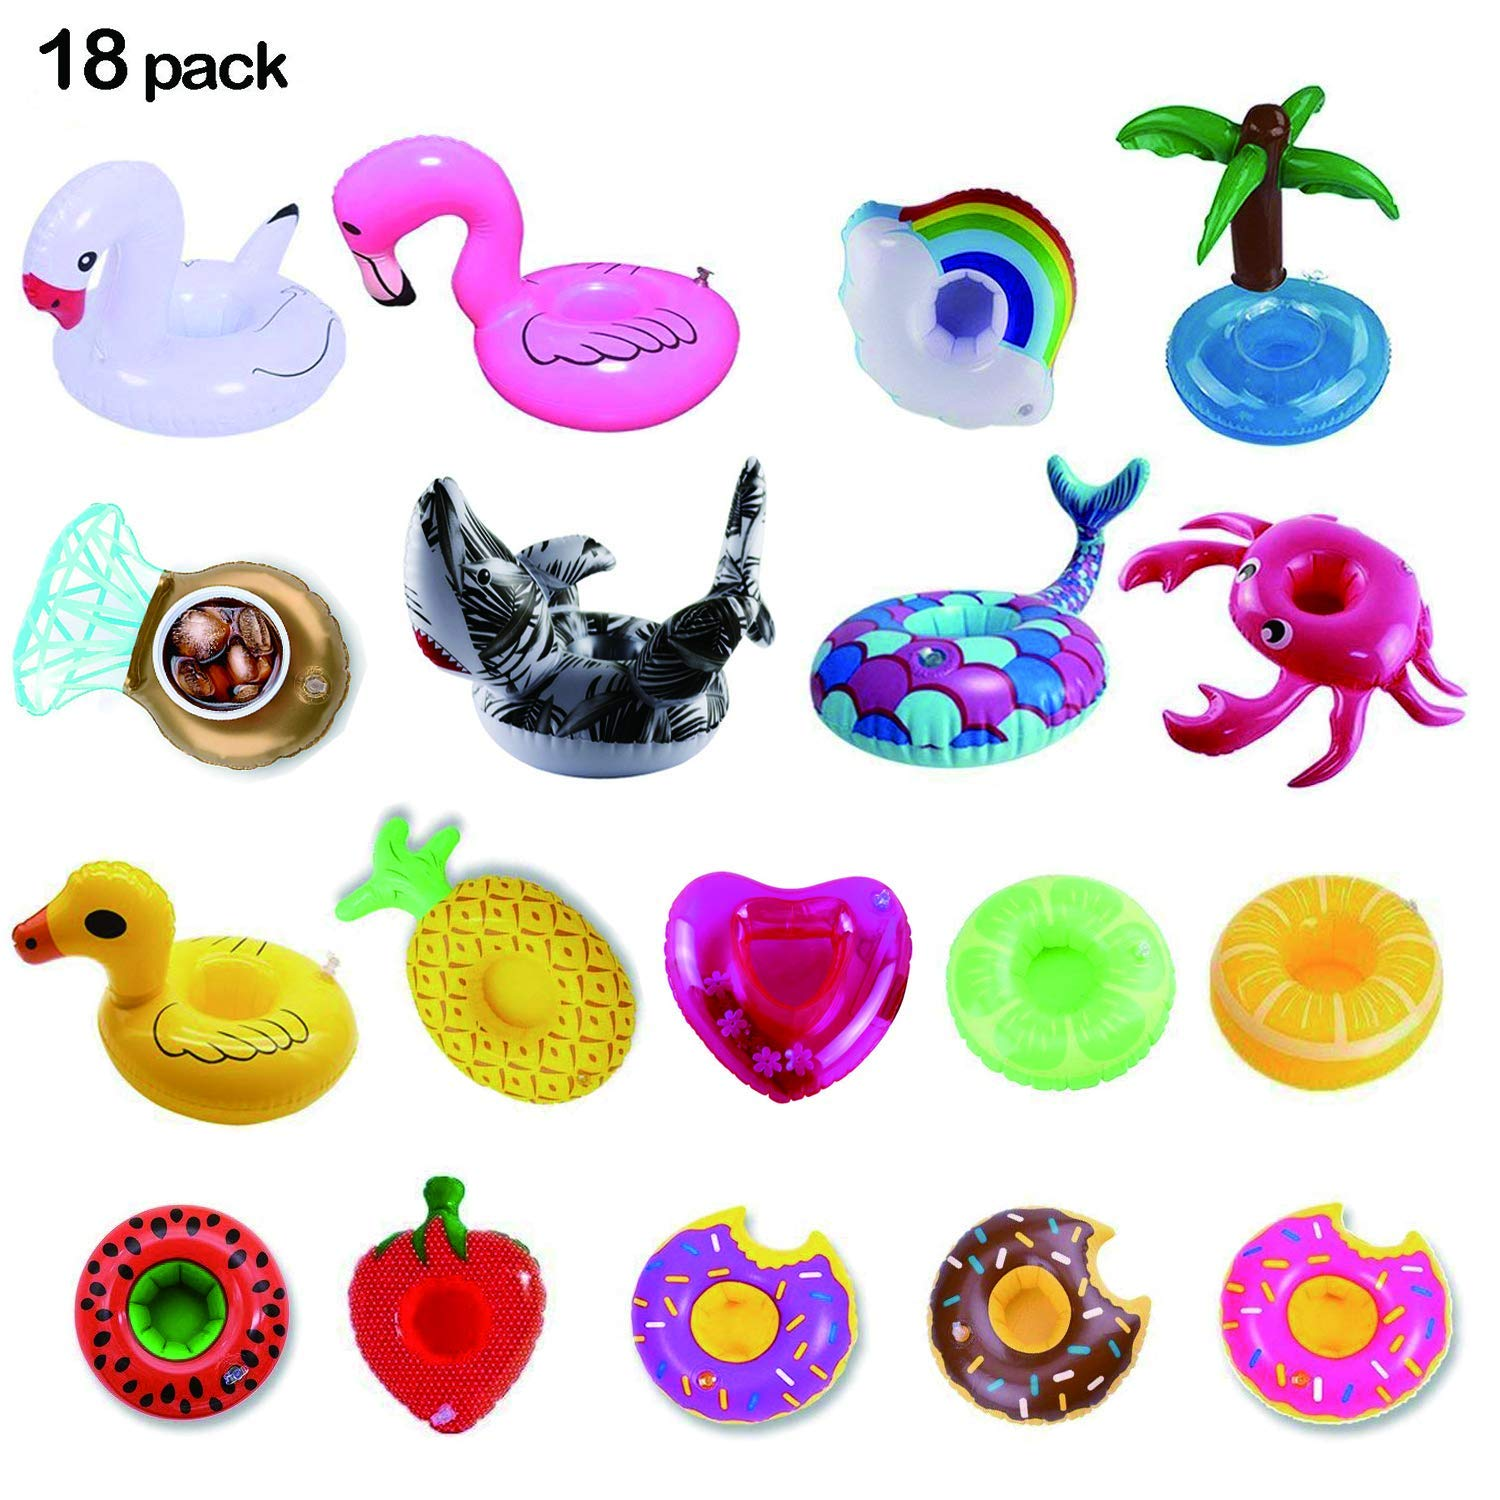 LKDEPO Inflatable Drink Holder 18 Pack, Floats Inflatable Cup Coasters for Summer Pool Party and Kids Fun Bath Toys[Newest Type Shark&Mermaid]